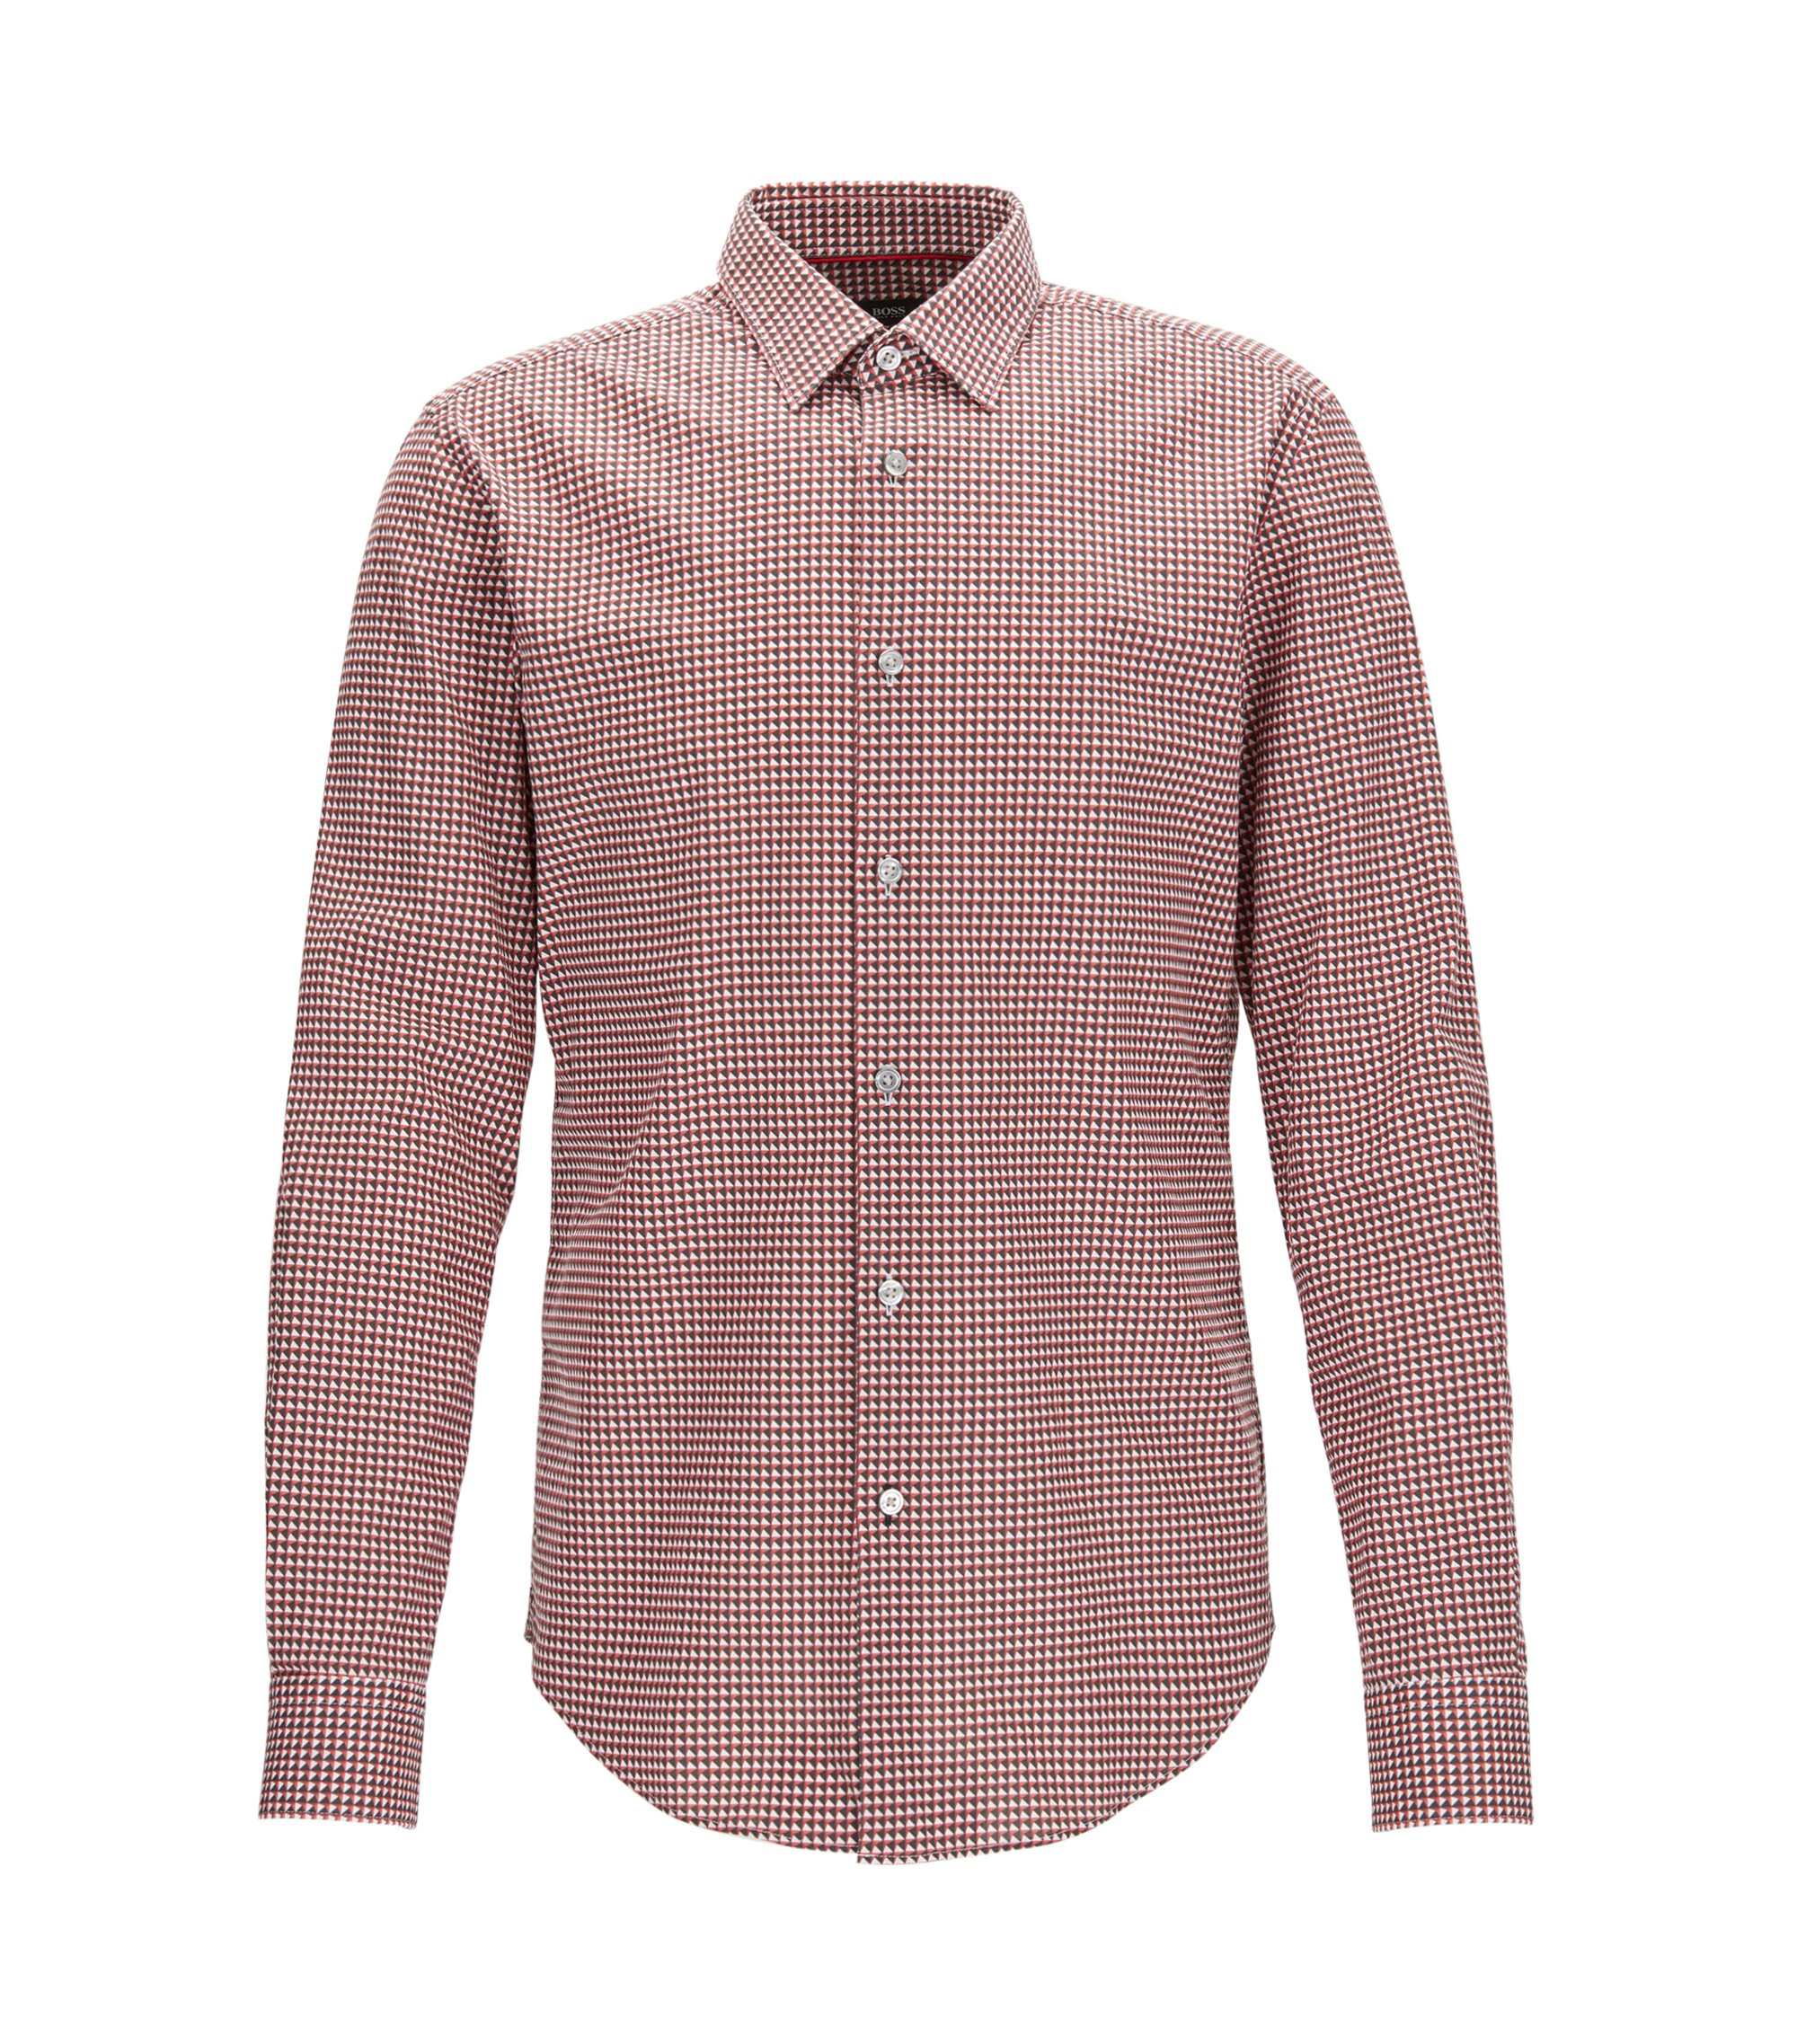 Geometric Stretch Cotton Sport Shirt, Slim Fit | Ronni F, Red